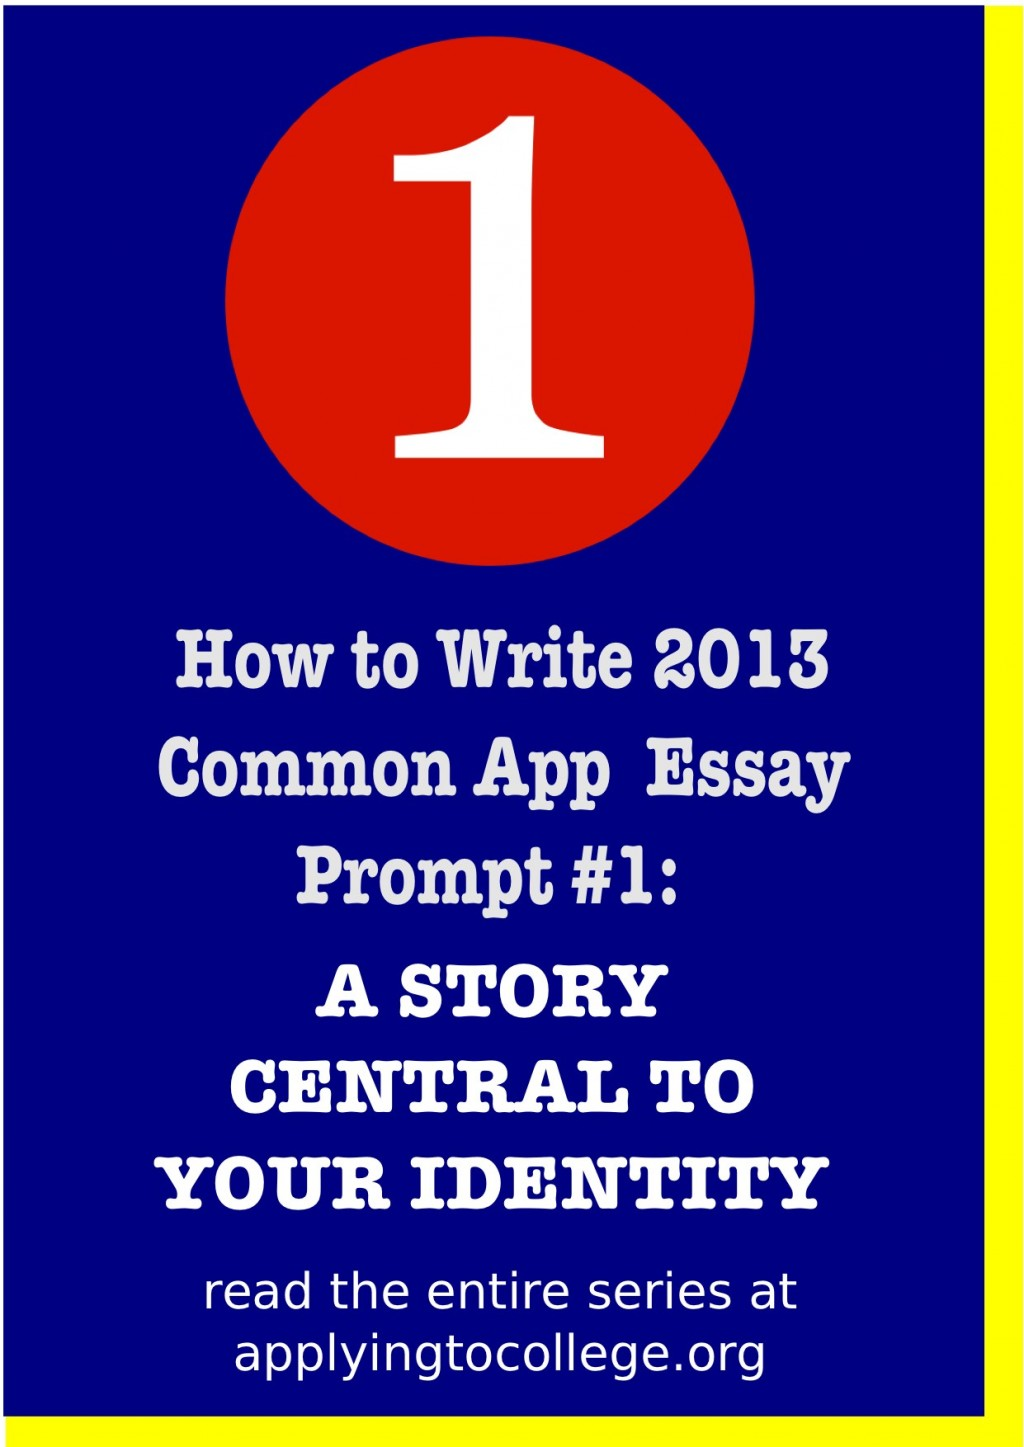 010 How To Write Common App Essay Coalition Application Prompts Frightening Large